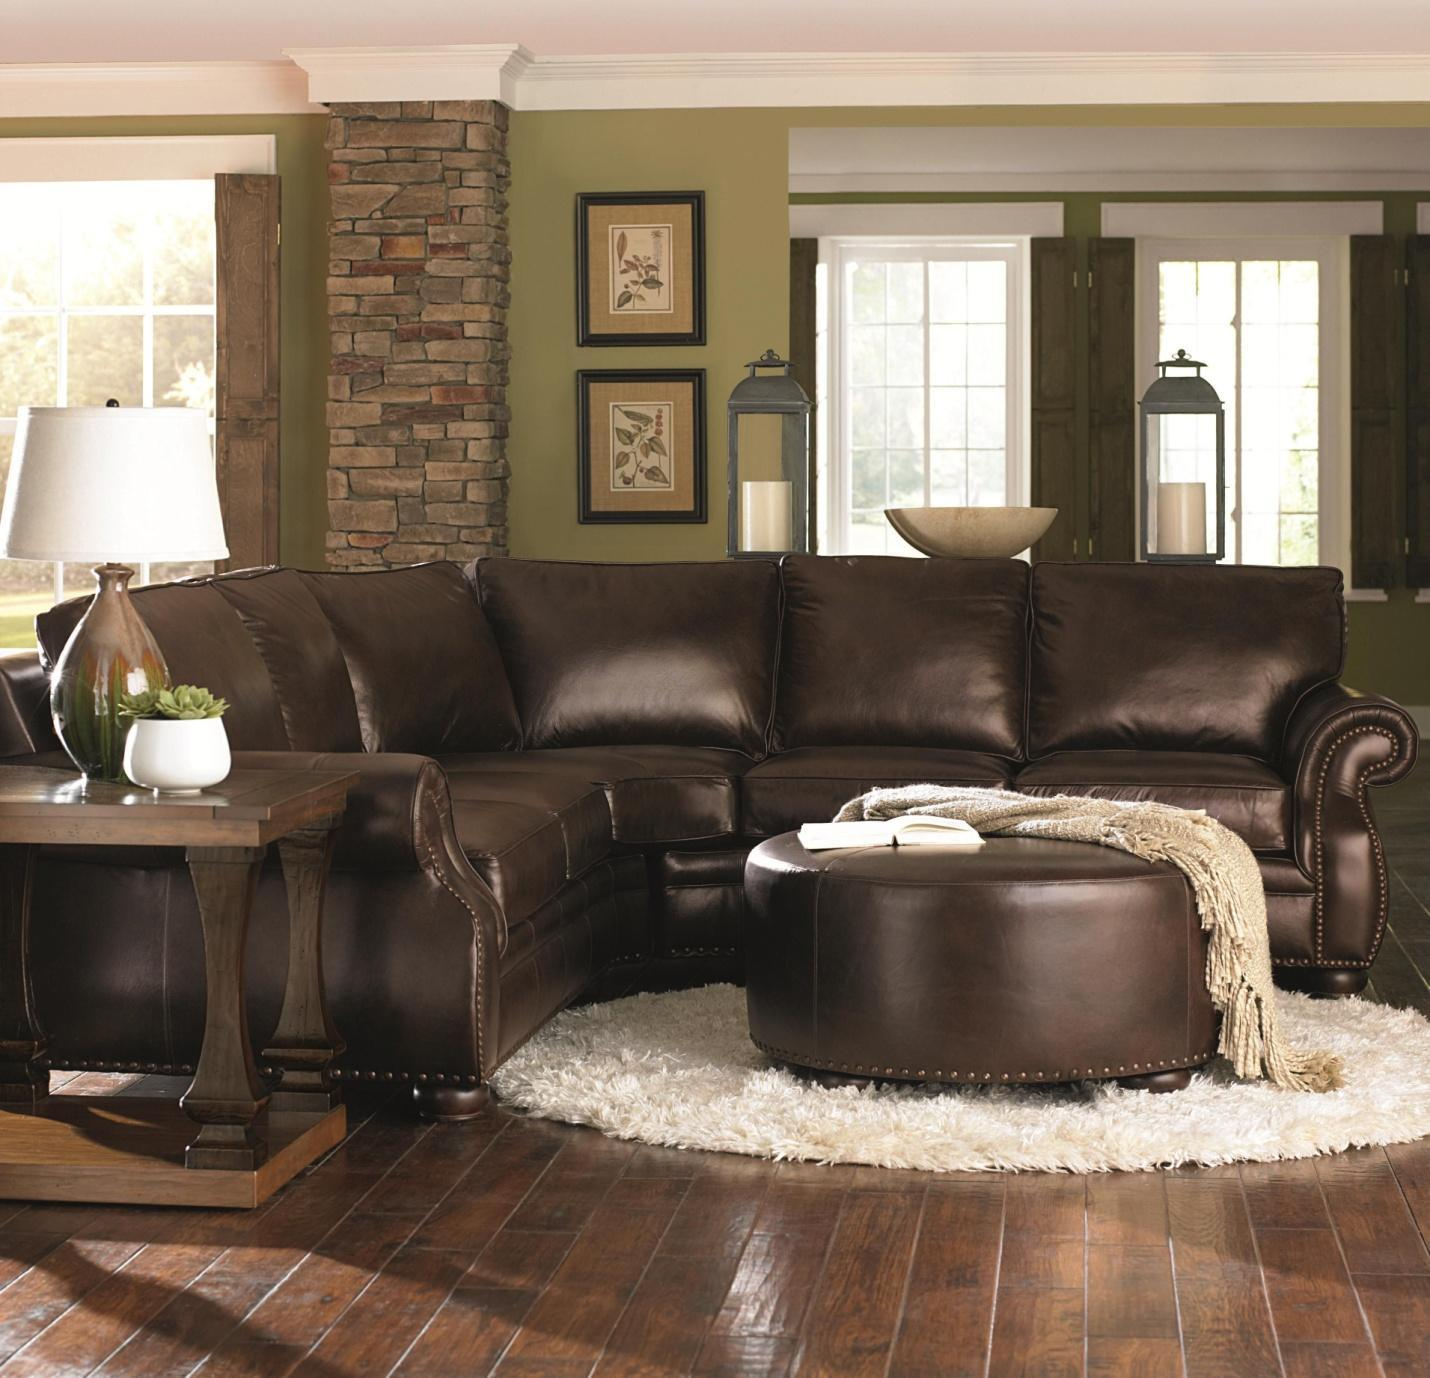 Pin by Cathy Johnson on Home decor | Leather living room furniture, Living  room leather, Leather couches living room